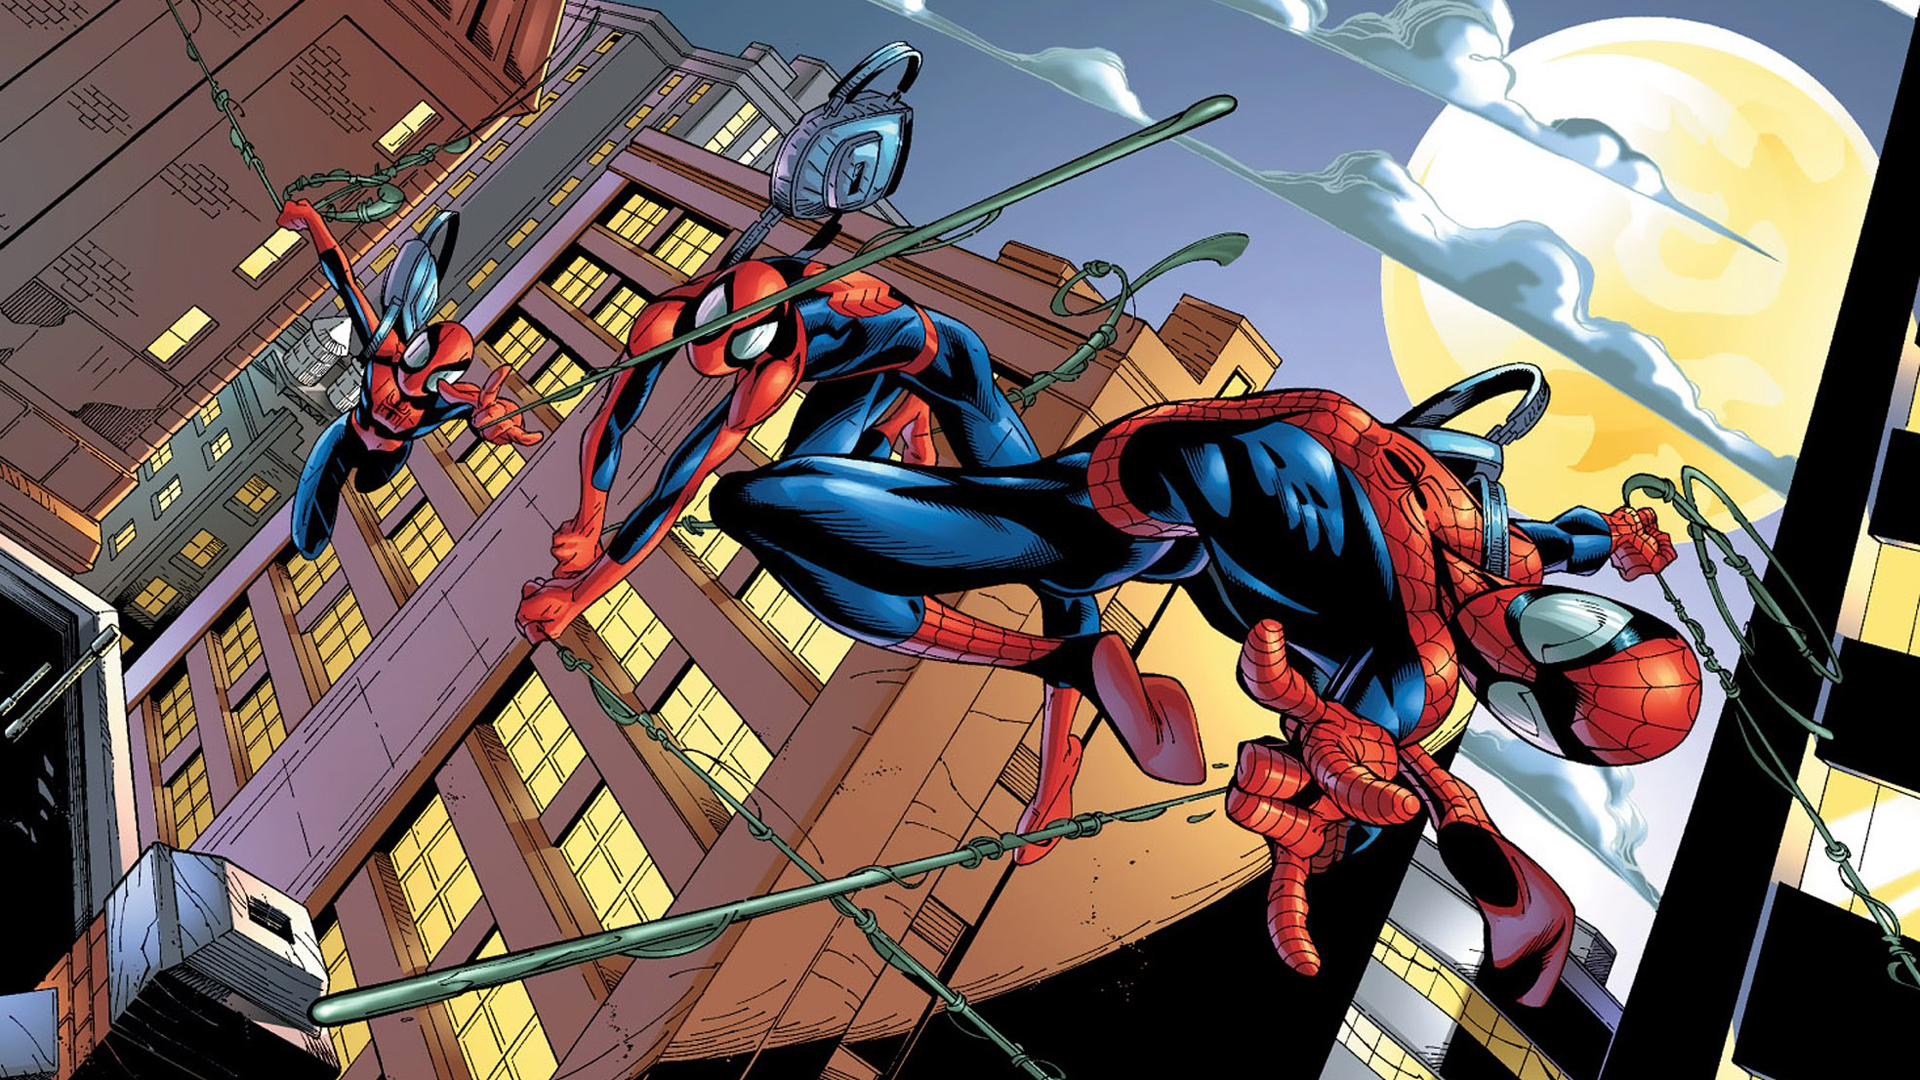 Spiderman comics spider-man superhero wallpaper ...